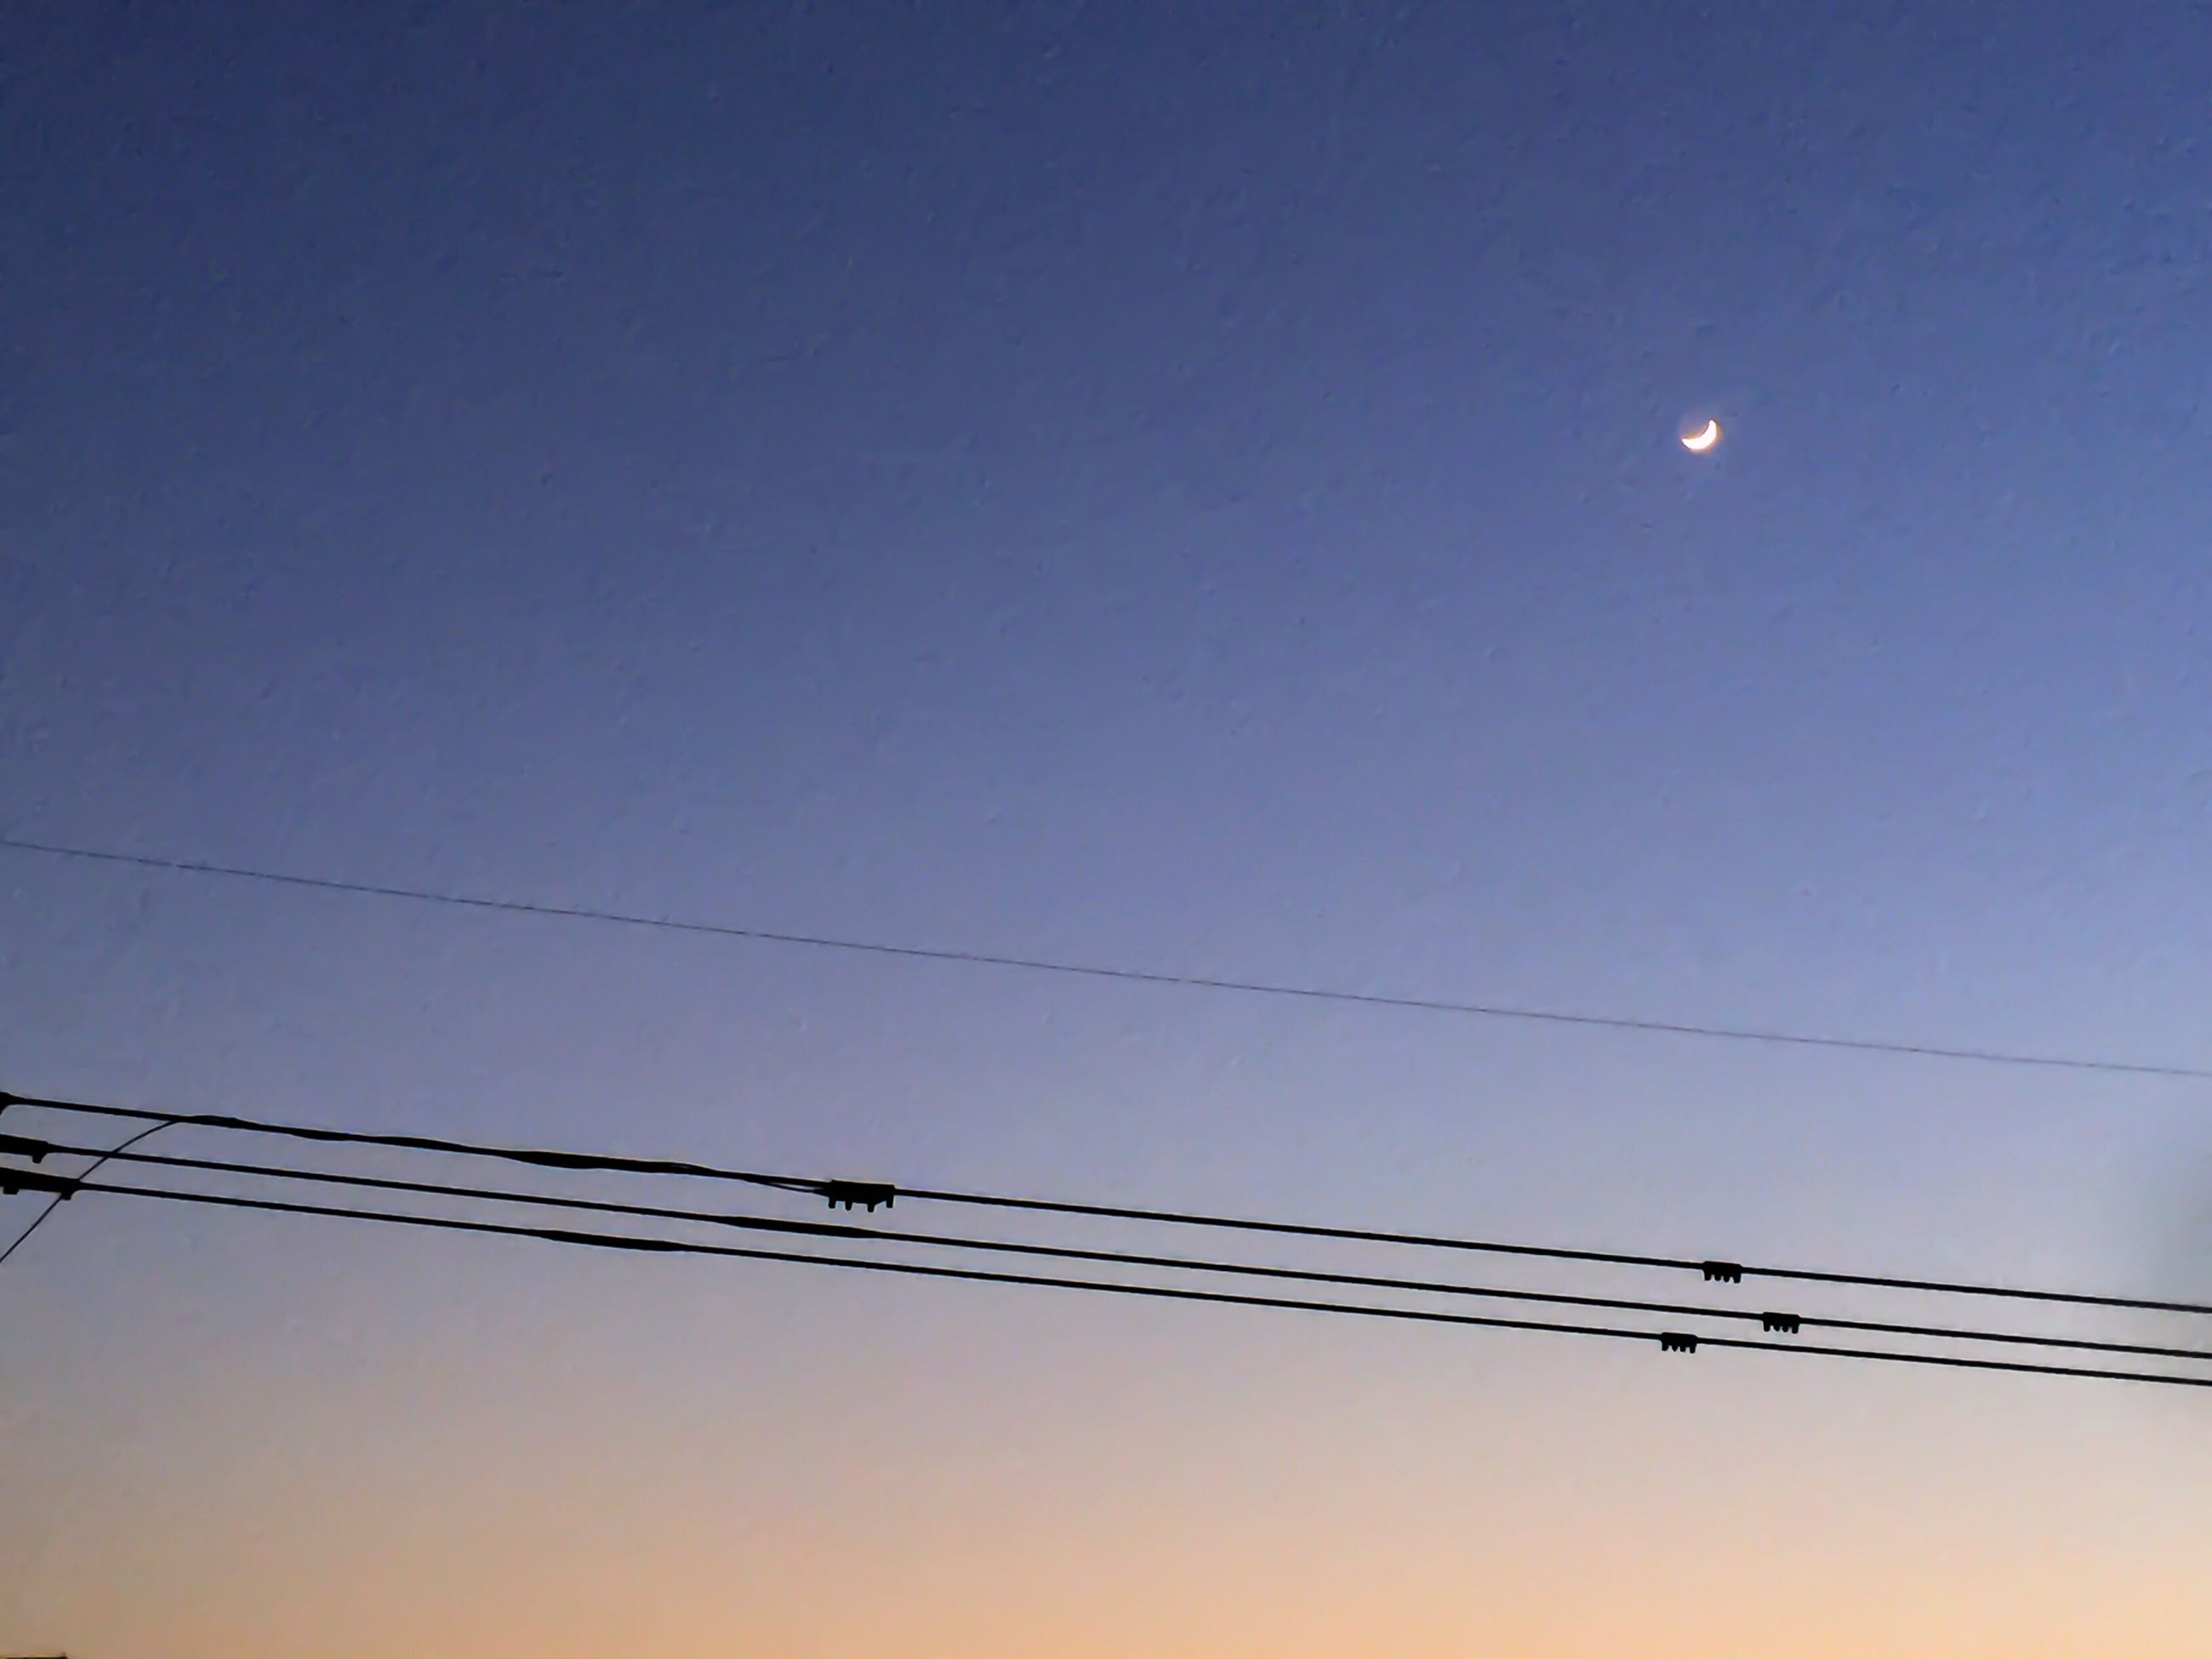 moon, cable, low angle view, connection, power line, clear sky, electricity, no people, nature, sky, outdoors, beauty in nature, bird, day, astronomy